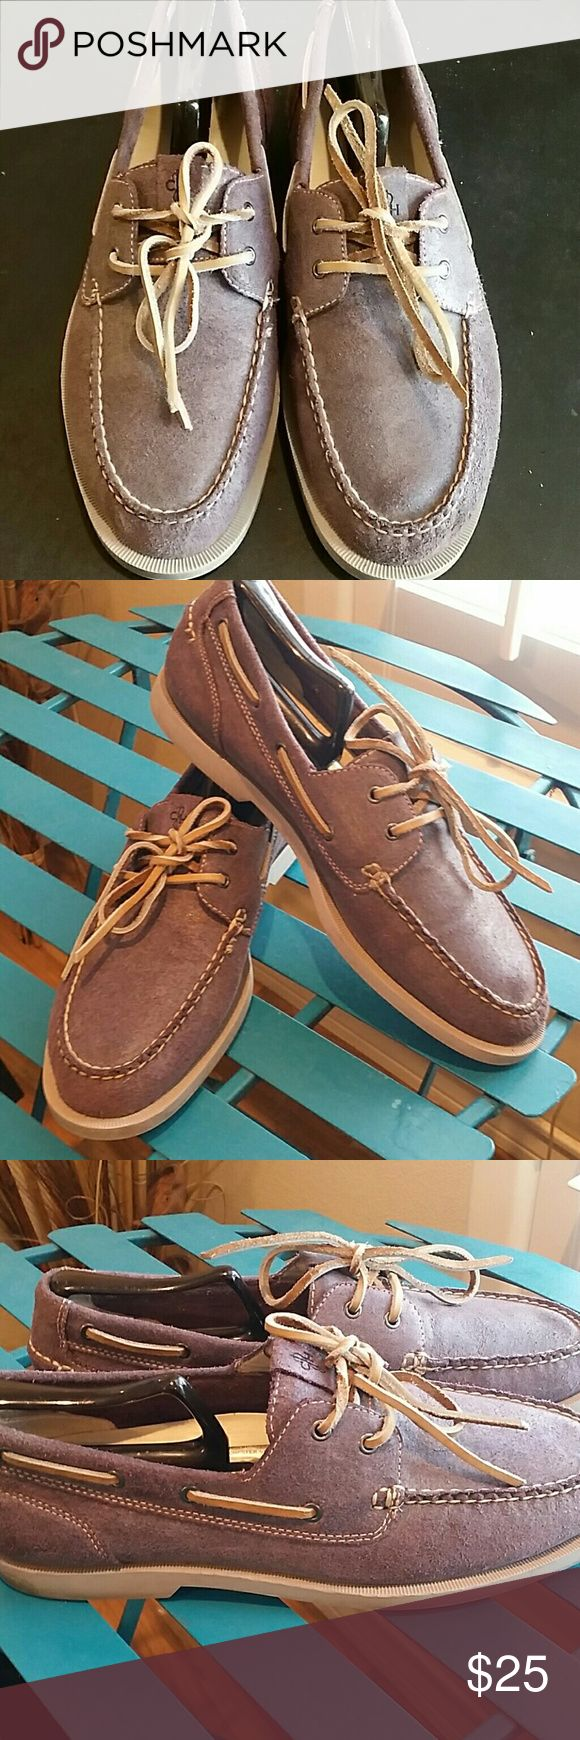 Cole Haan Air Yacht Club Mulberry Boat Shoes Cole Haan Air Yacht Club Mulberry Boat Shoes in great condition Cole Haan Shoes Boat Shoes